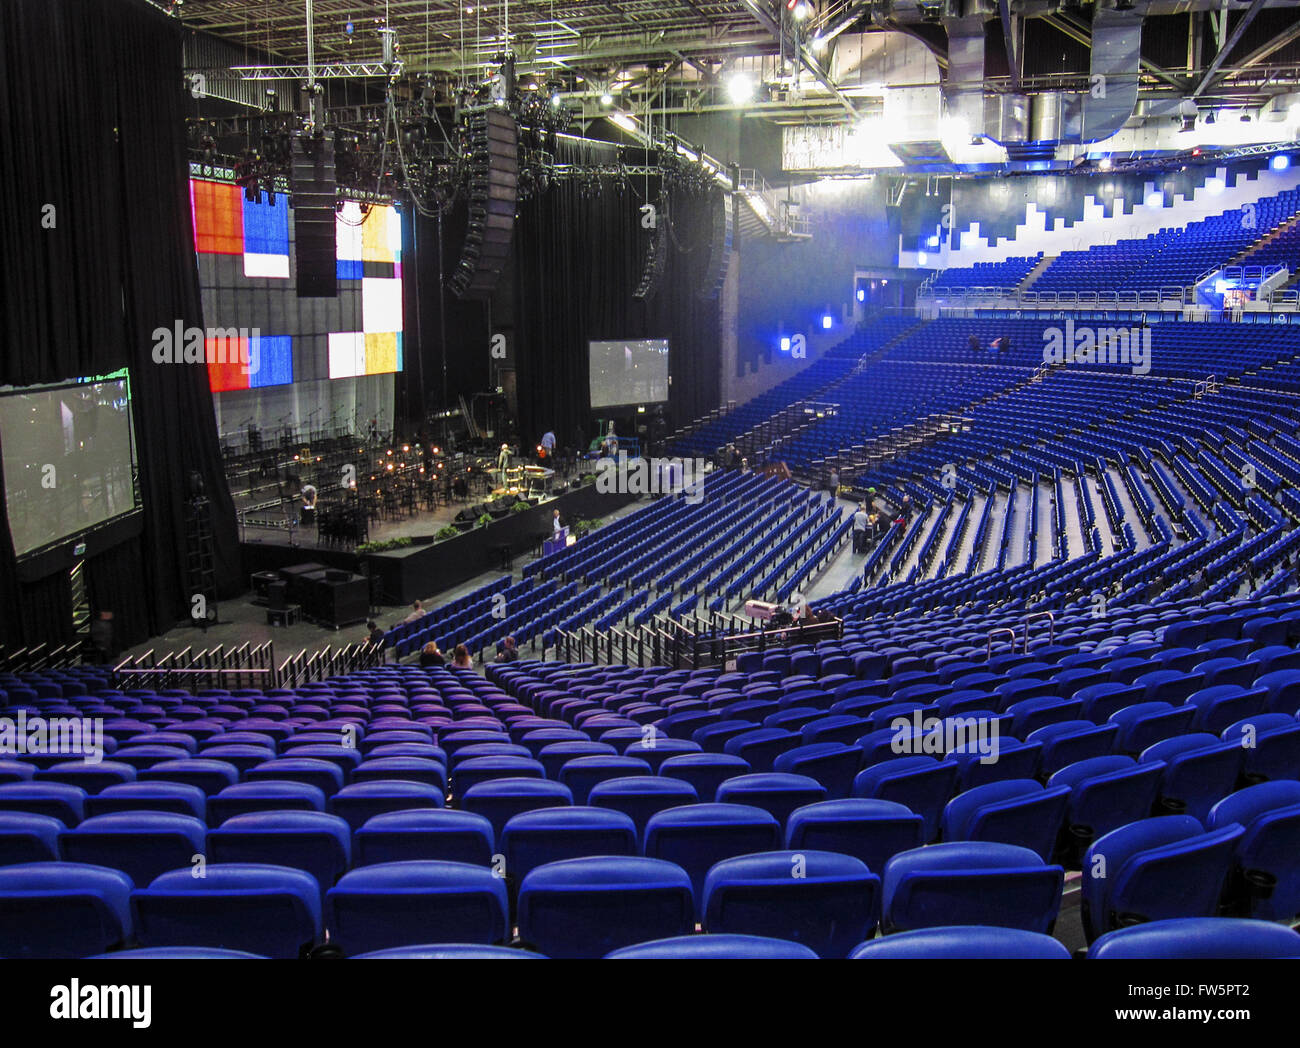 Dublin The O2 Arena, seating and stage. The O2 (stylised as The O2) is a 14,500-capacity amphitheatre located at - Stock Image